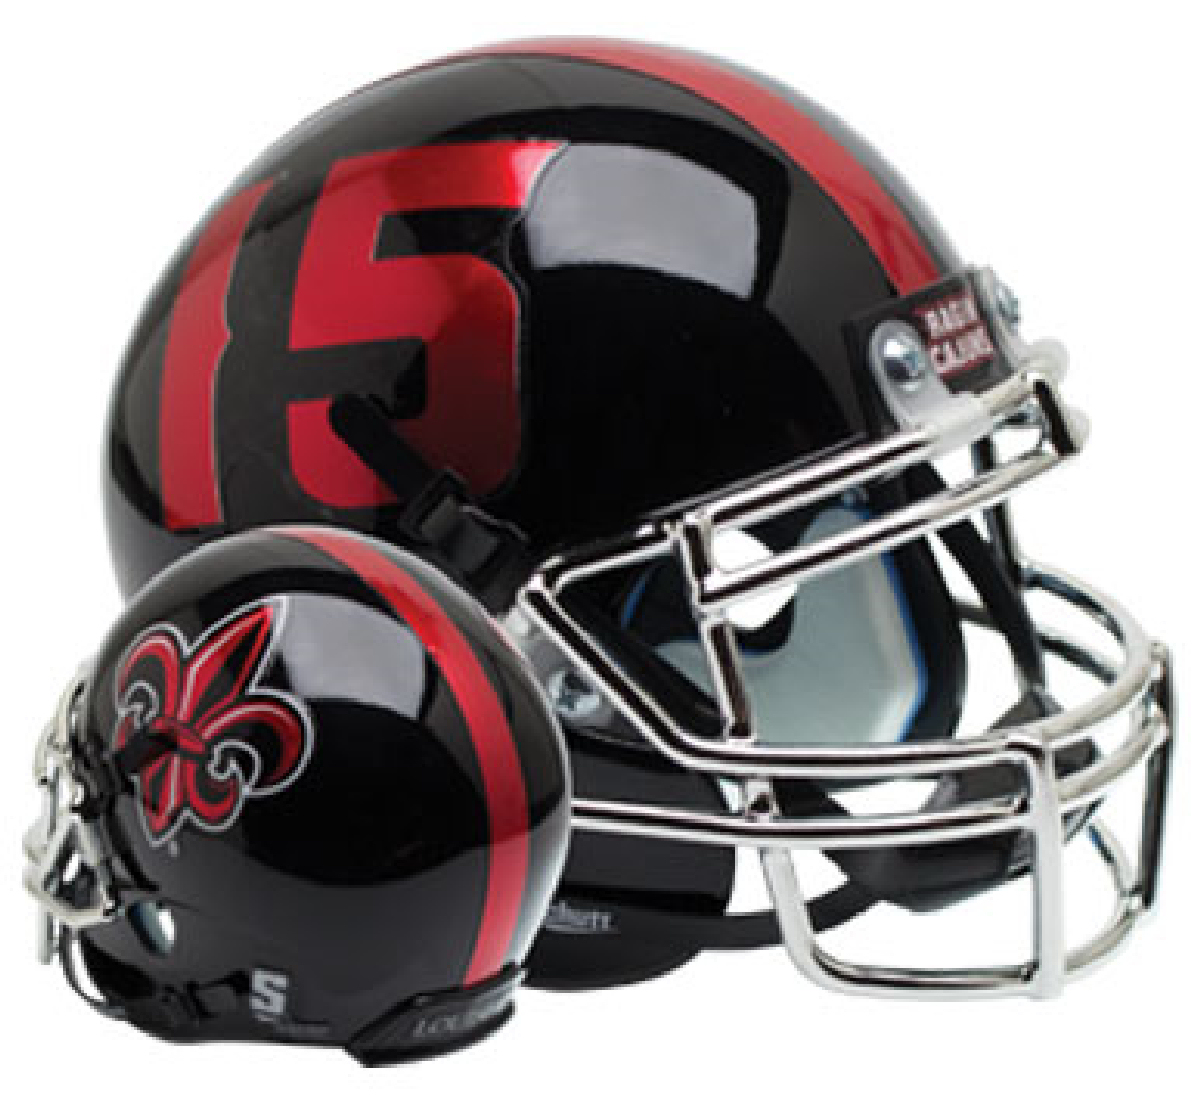 Louisiana (Lafayette) Ragin Cajuns Miniature Football Helmet Desk Caddy <B>Black with Chrome Mask</B>